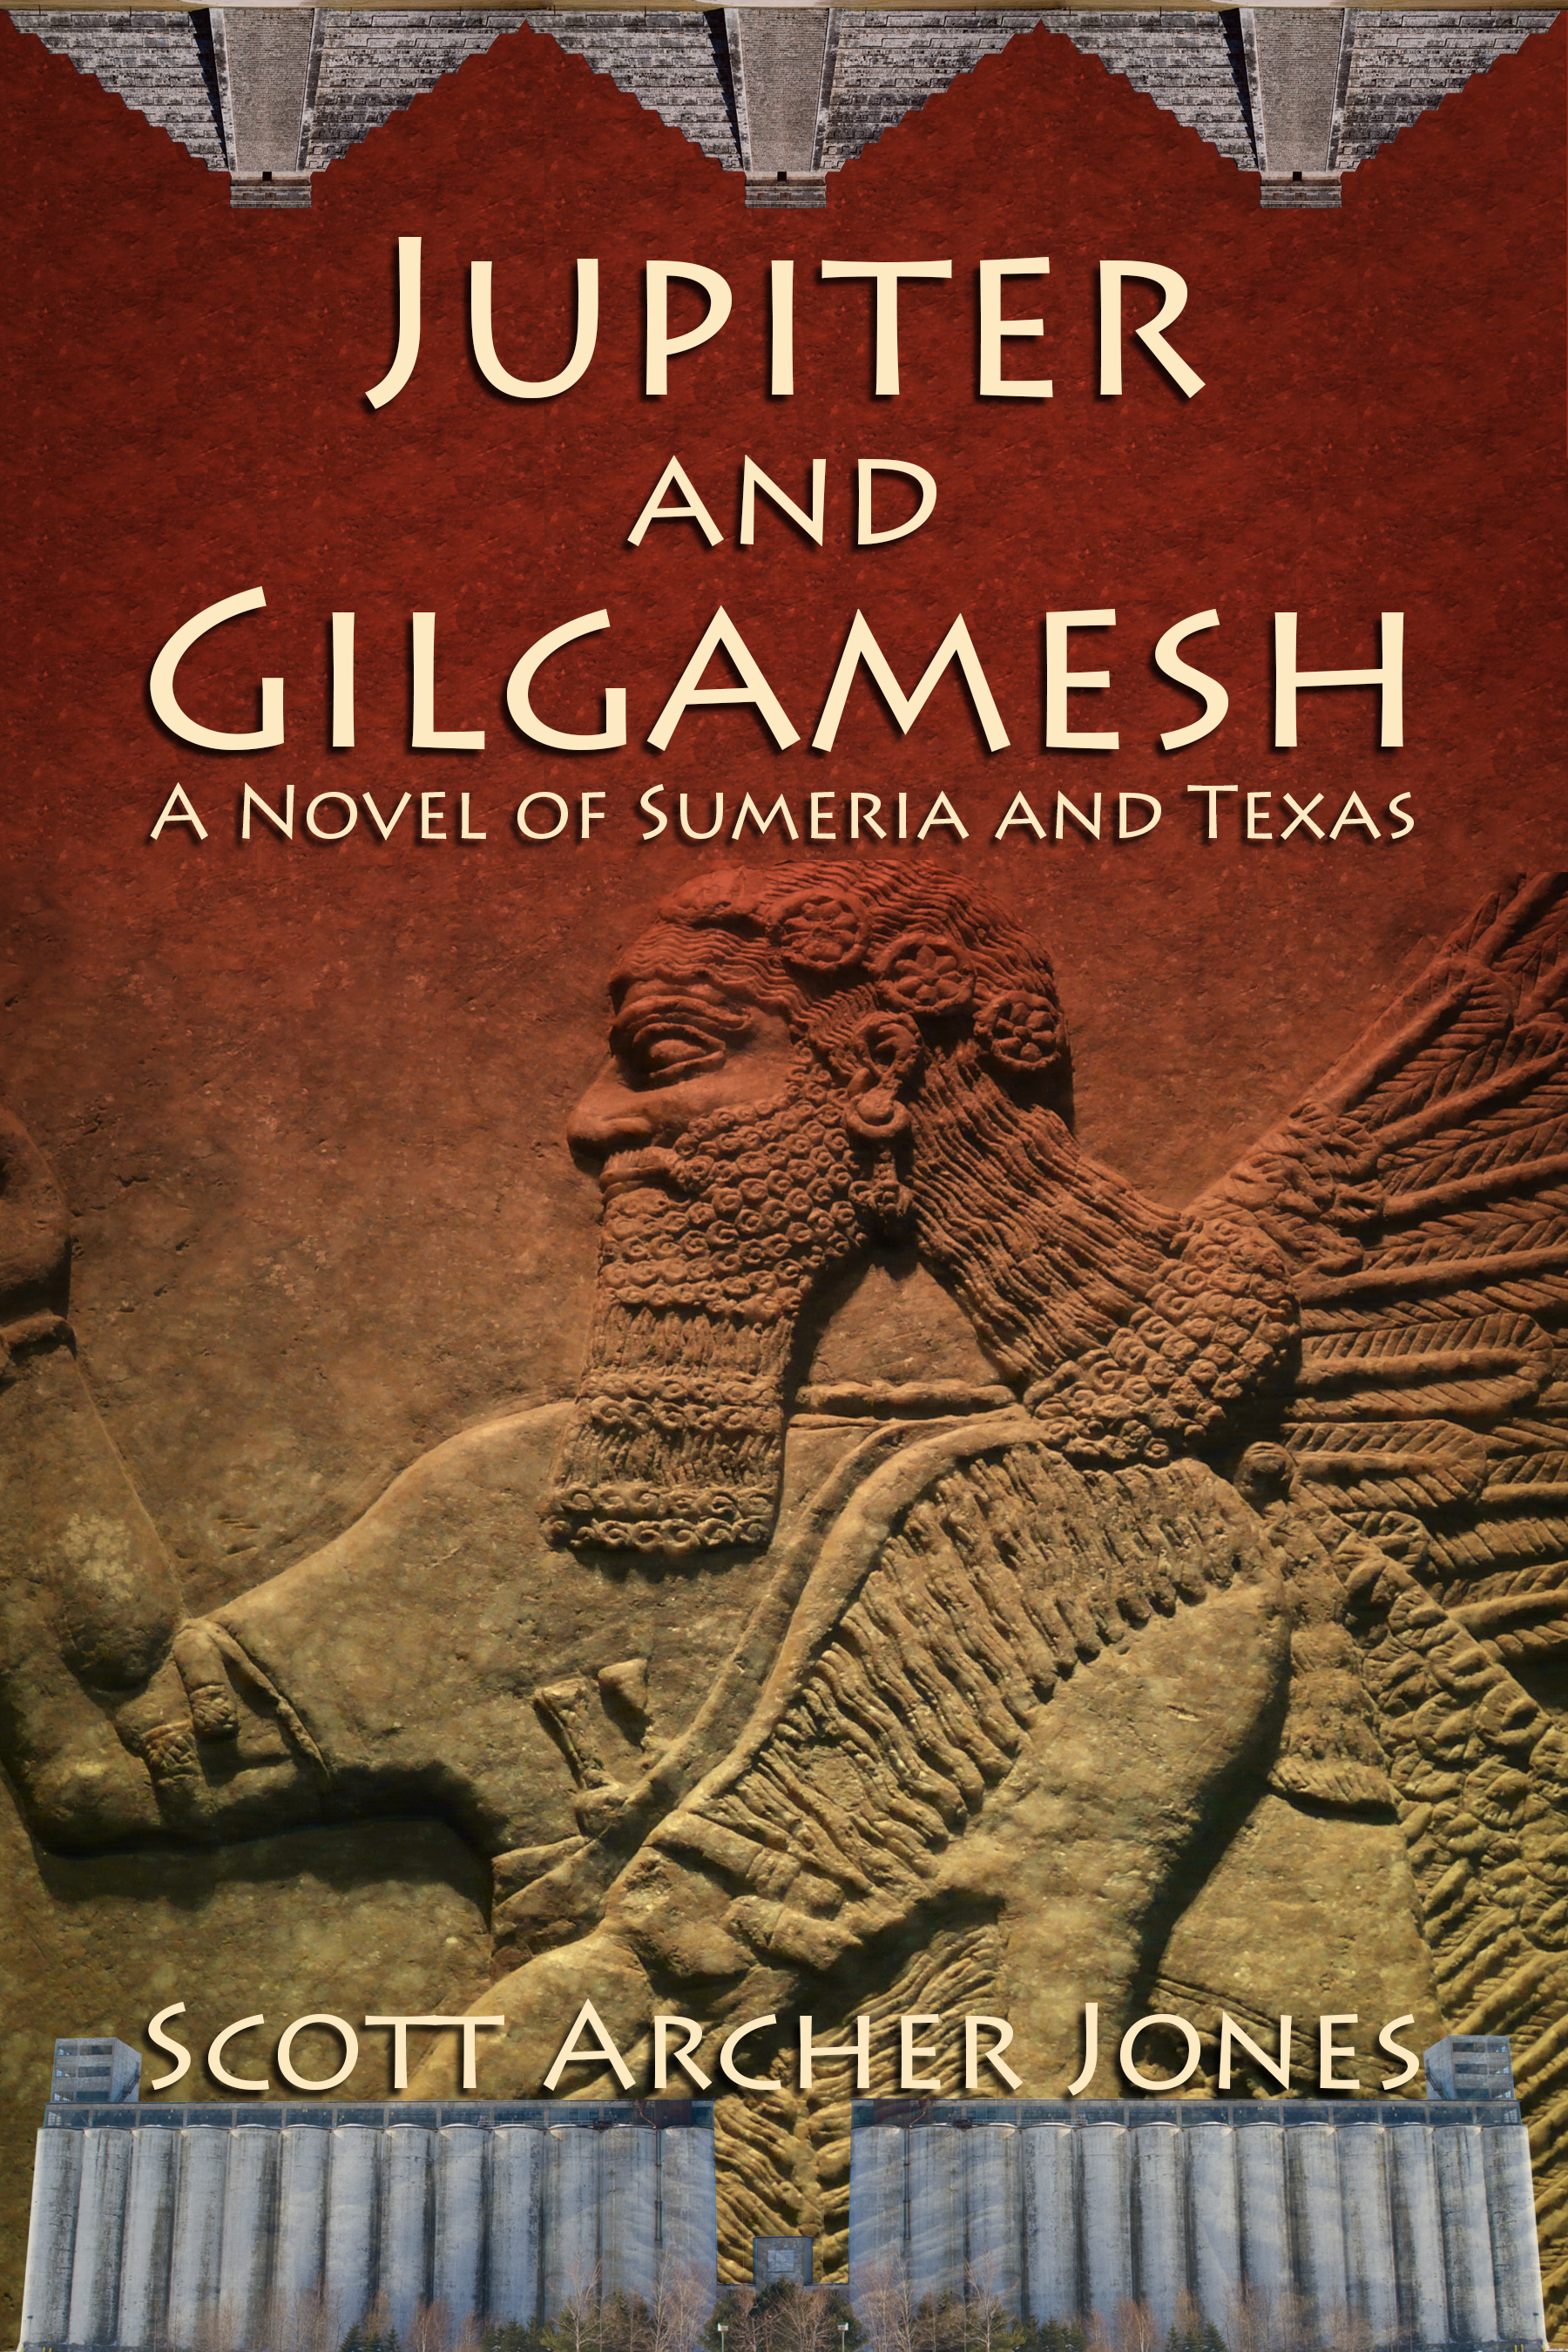 scott archer jones author jupiter and gilgamesh a novel. Black Bedroom Furniture Sets. Home Design Ideas